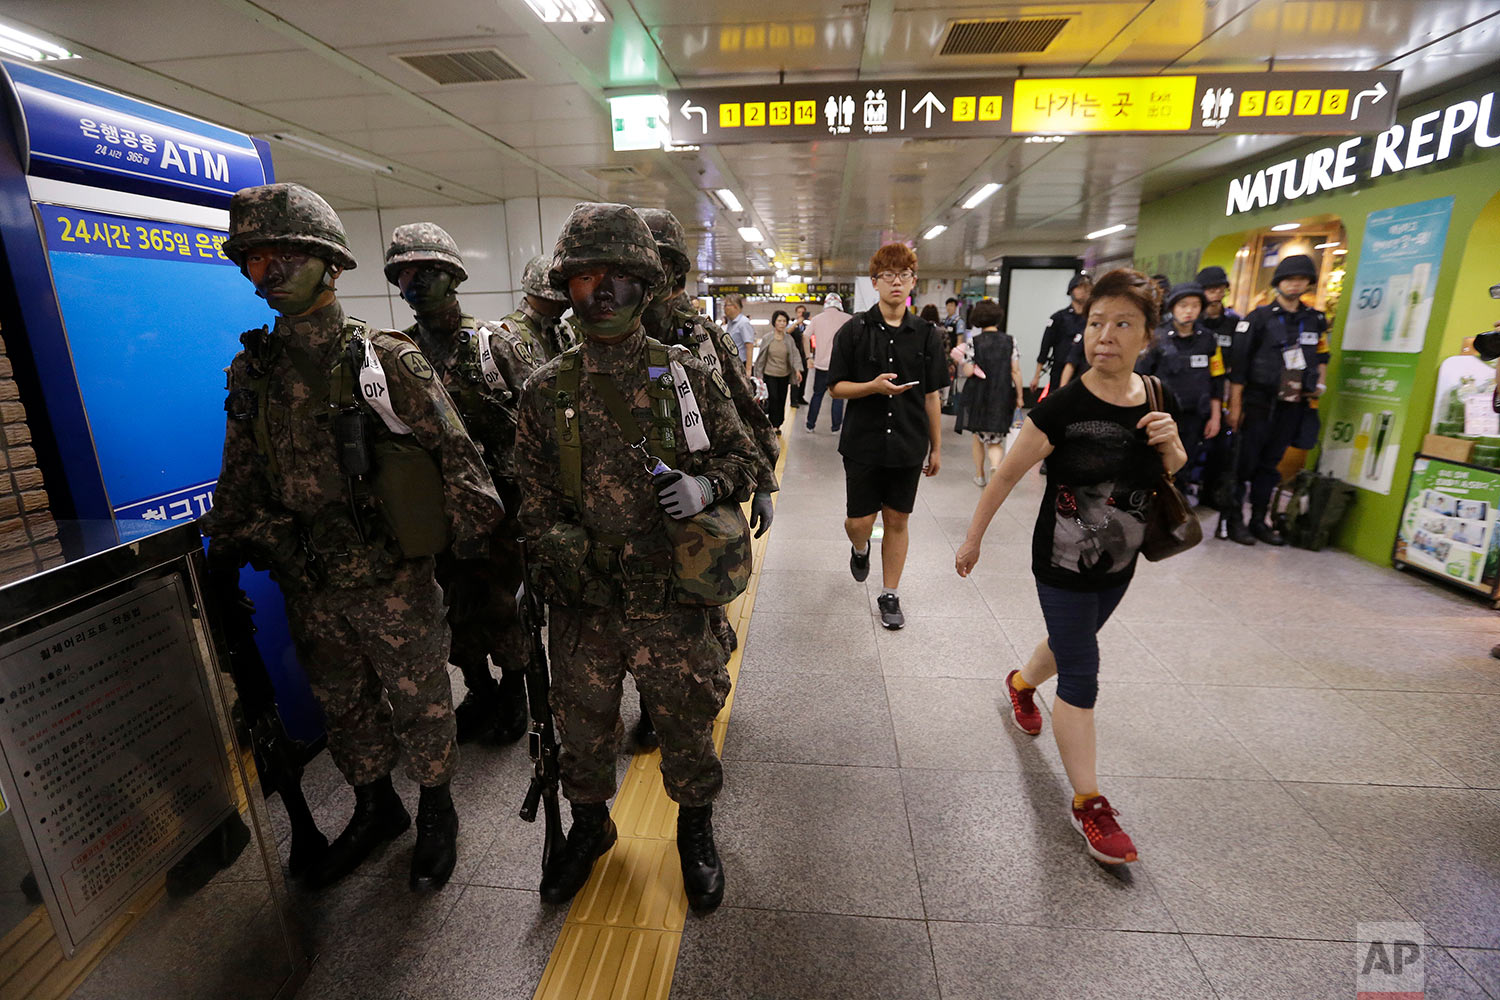 """Passengers walk past South Korean army soldiers during an anti-terror drill as part of Ulchi Freedom Guardian exercise, at a subway station in Seoul, South Korea, Tuesday, Aug. 22, 2017. As North Korea vowed """"merciless retaliation"""" against U.S.-South Korean military drills it claims are an invasion rehearsal, senior U.S. military commanders on Tuesday dismissed calls to pause or downsize exercises they called crucial to countering a clear threat from Pyongyang. (AP Photo/Ahn Young-joon)"""